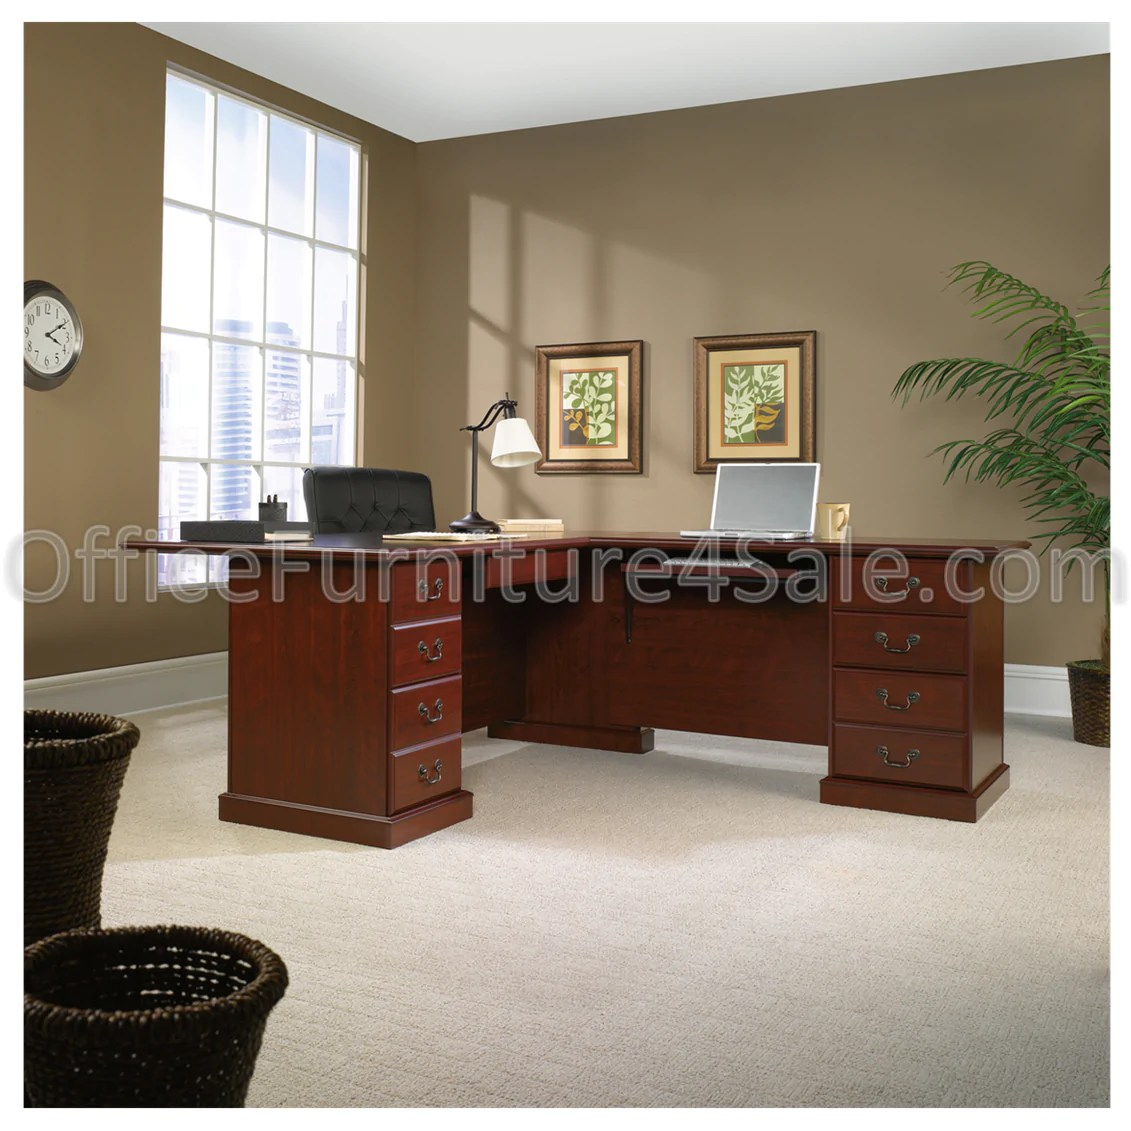 Executive L Shaped Desk Sauder Heritage Hill Outlet Executive L Shape Desk 29 3 4 H X 70 1 2 W X 83 D Classic Cherry